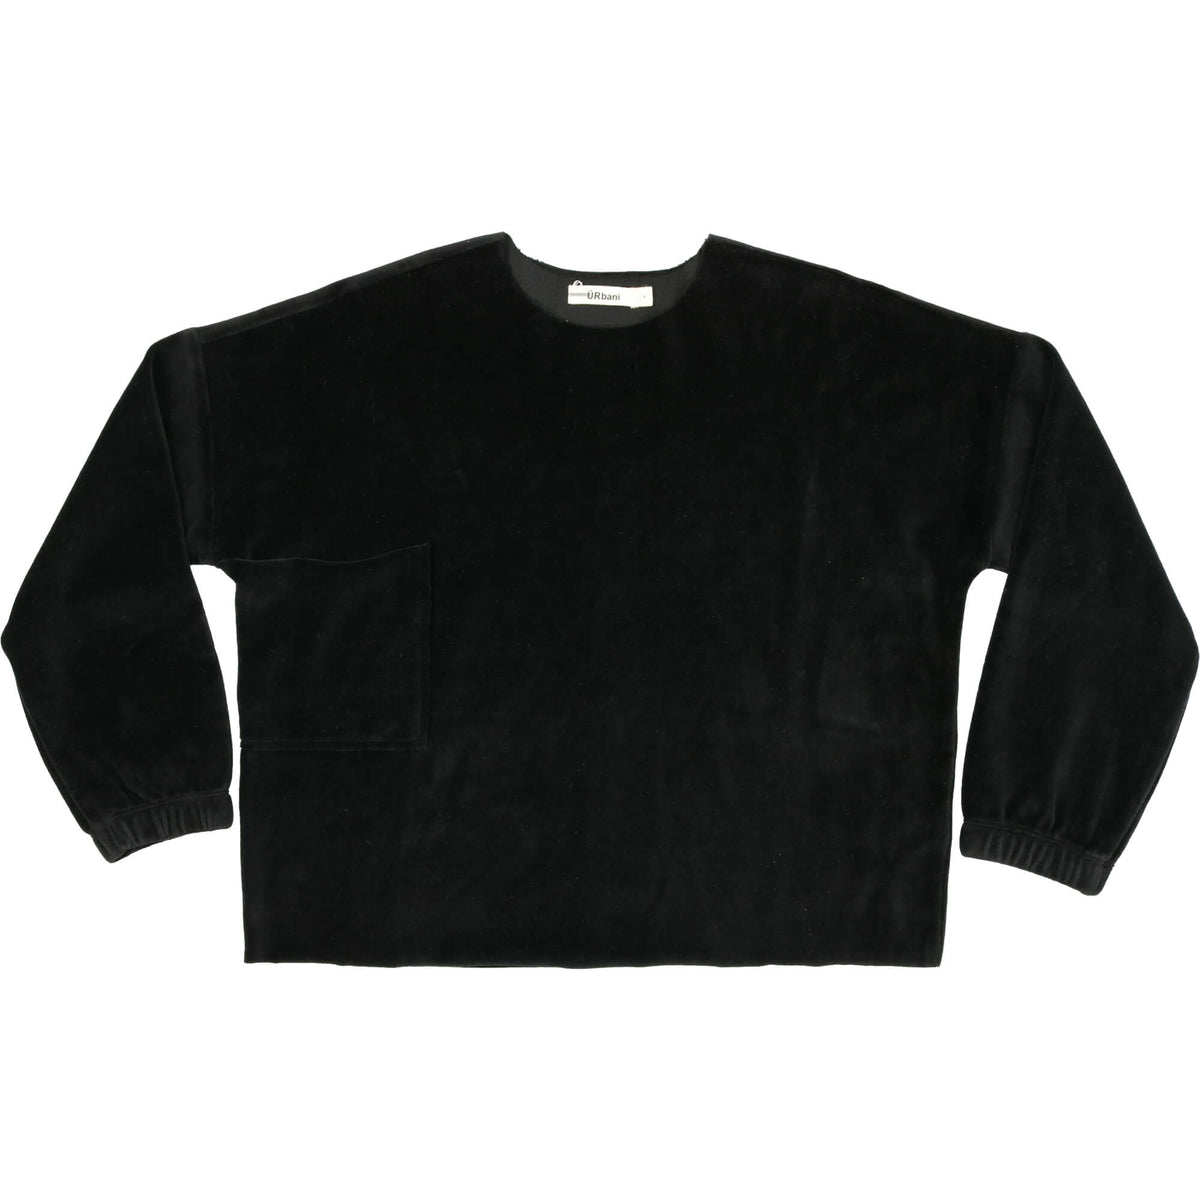 Black Oversized Velour Top